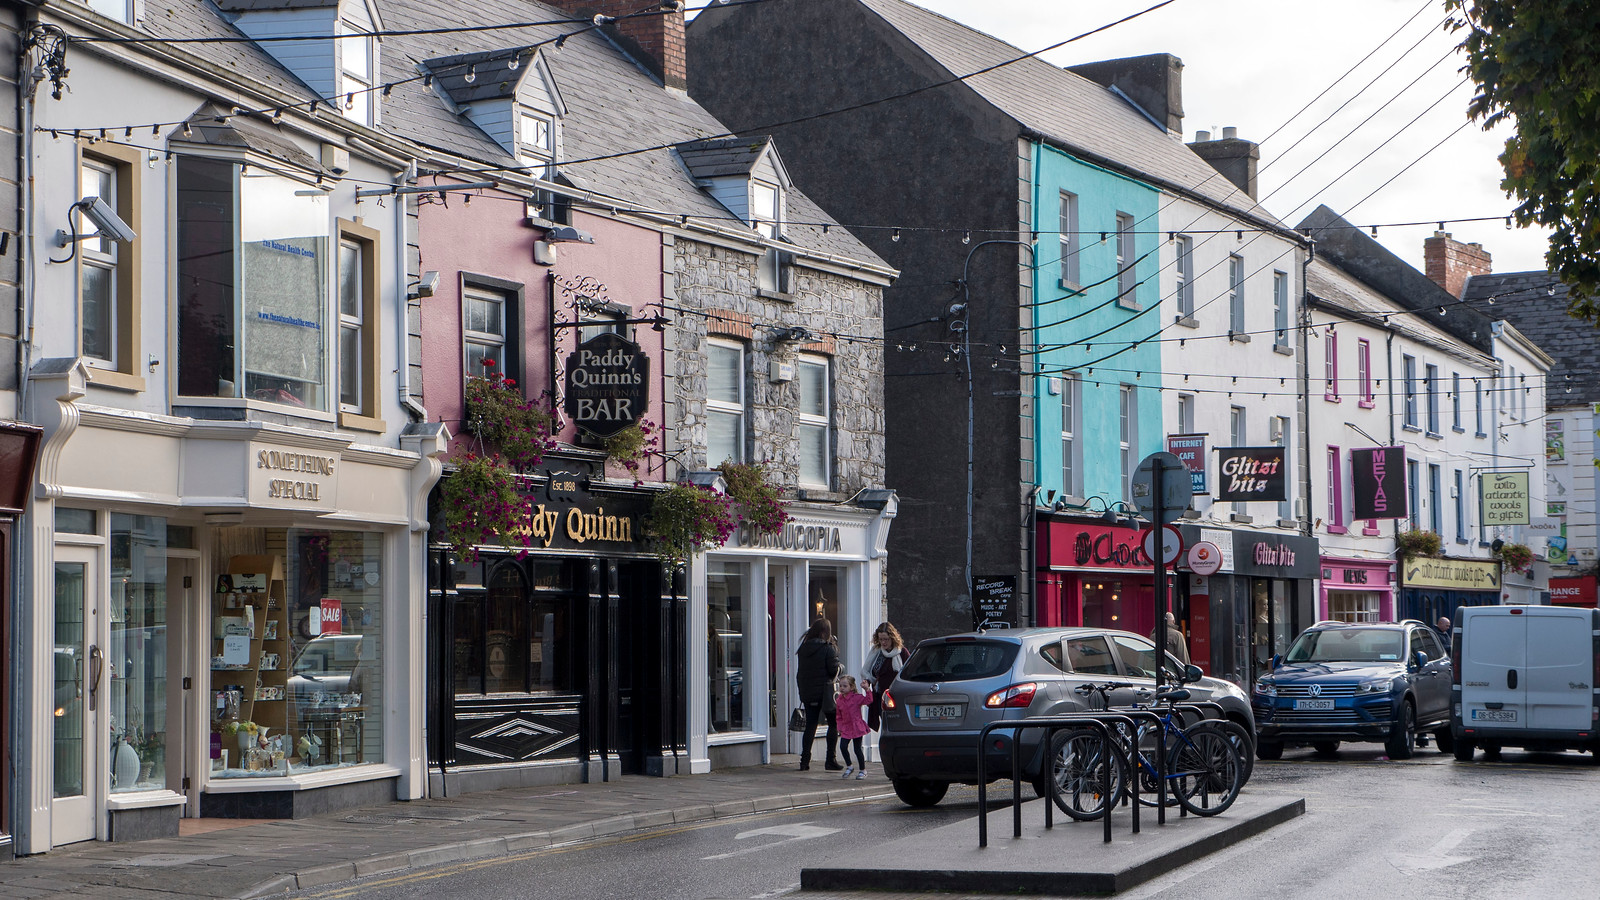 Ennis, Ireland: A Picturesque Town